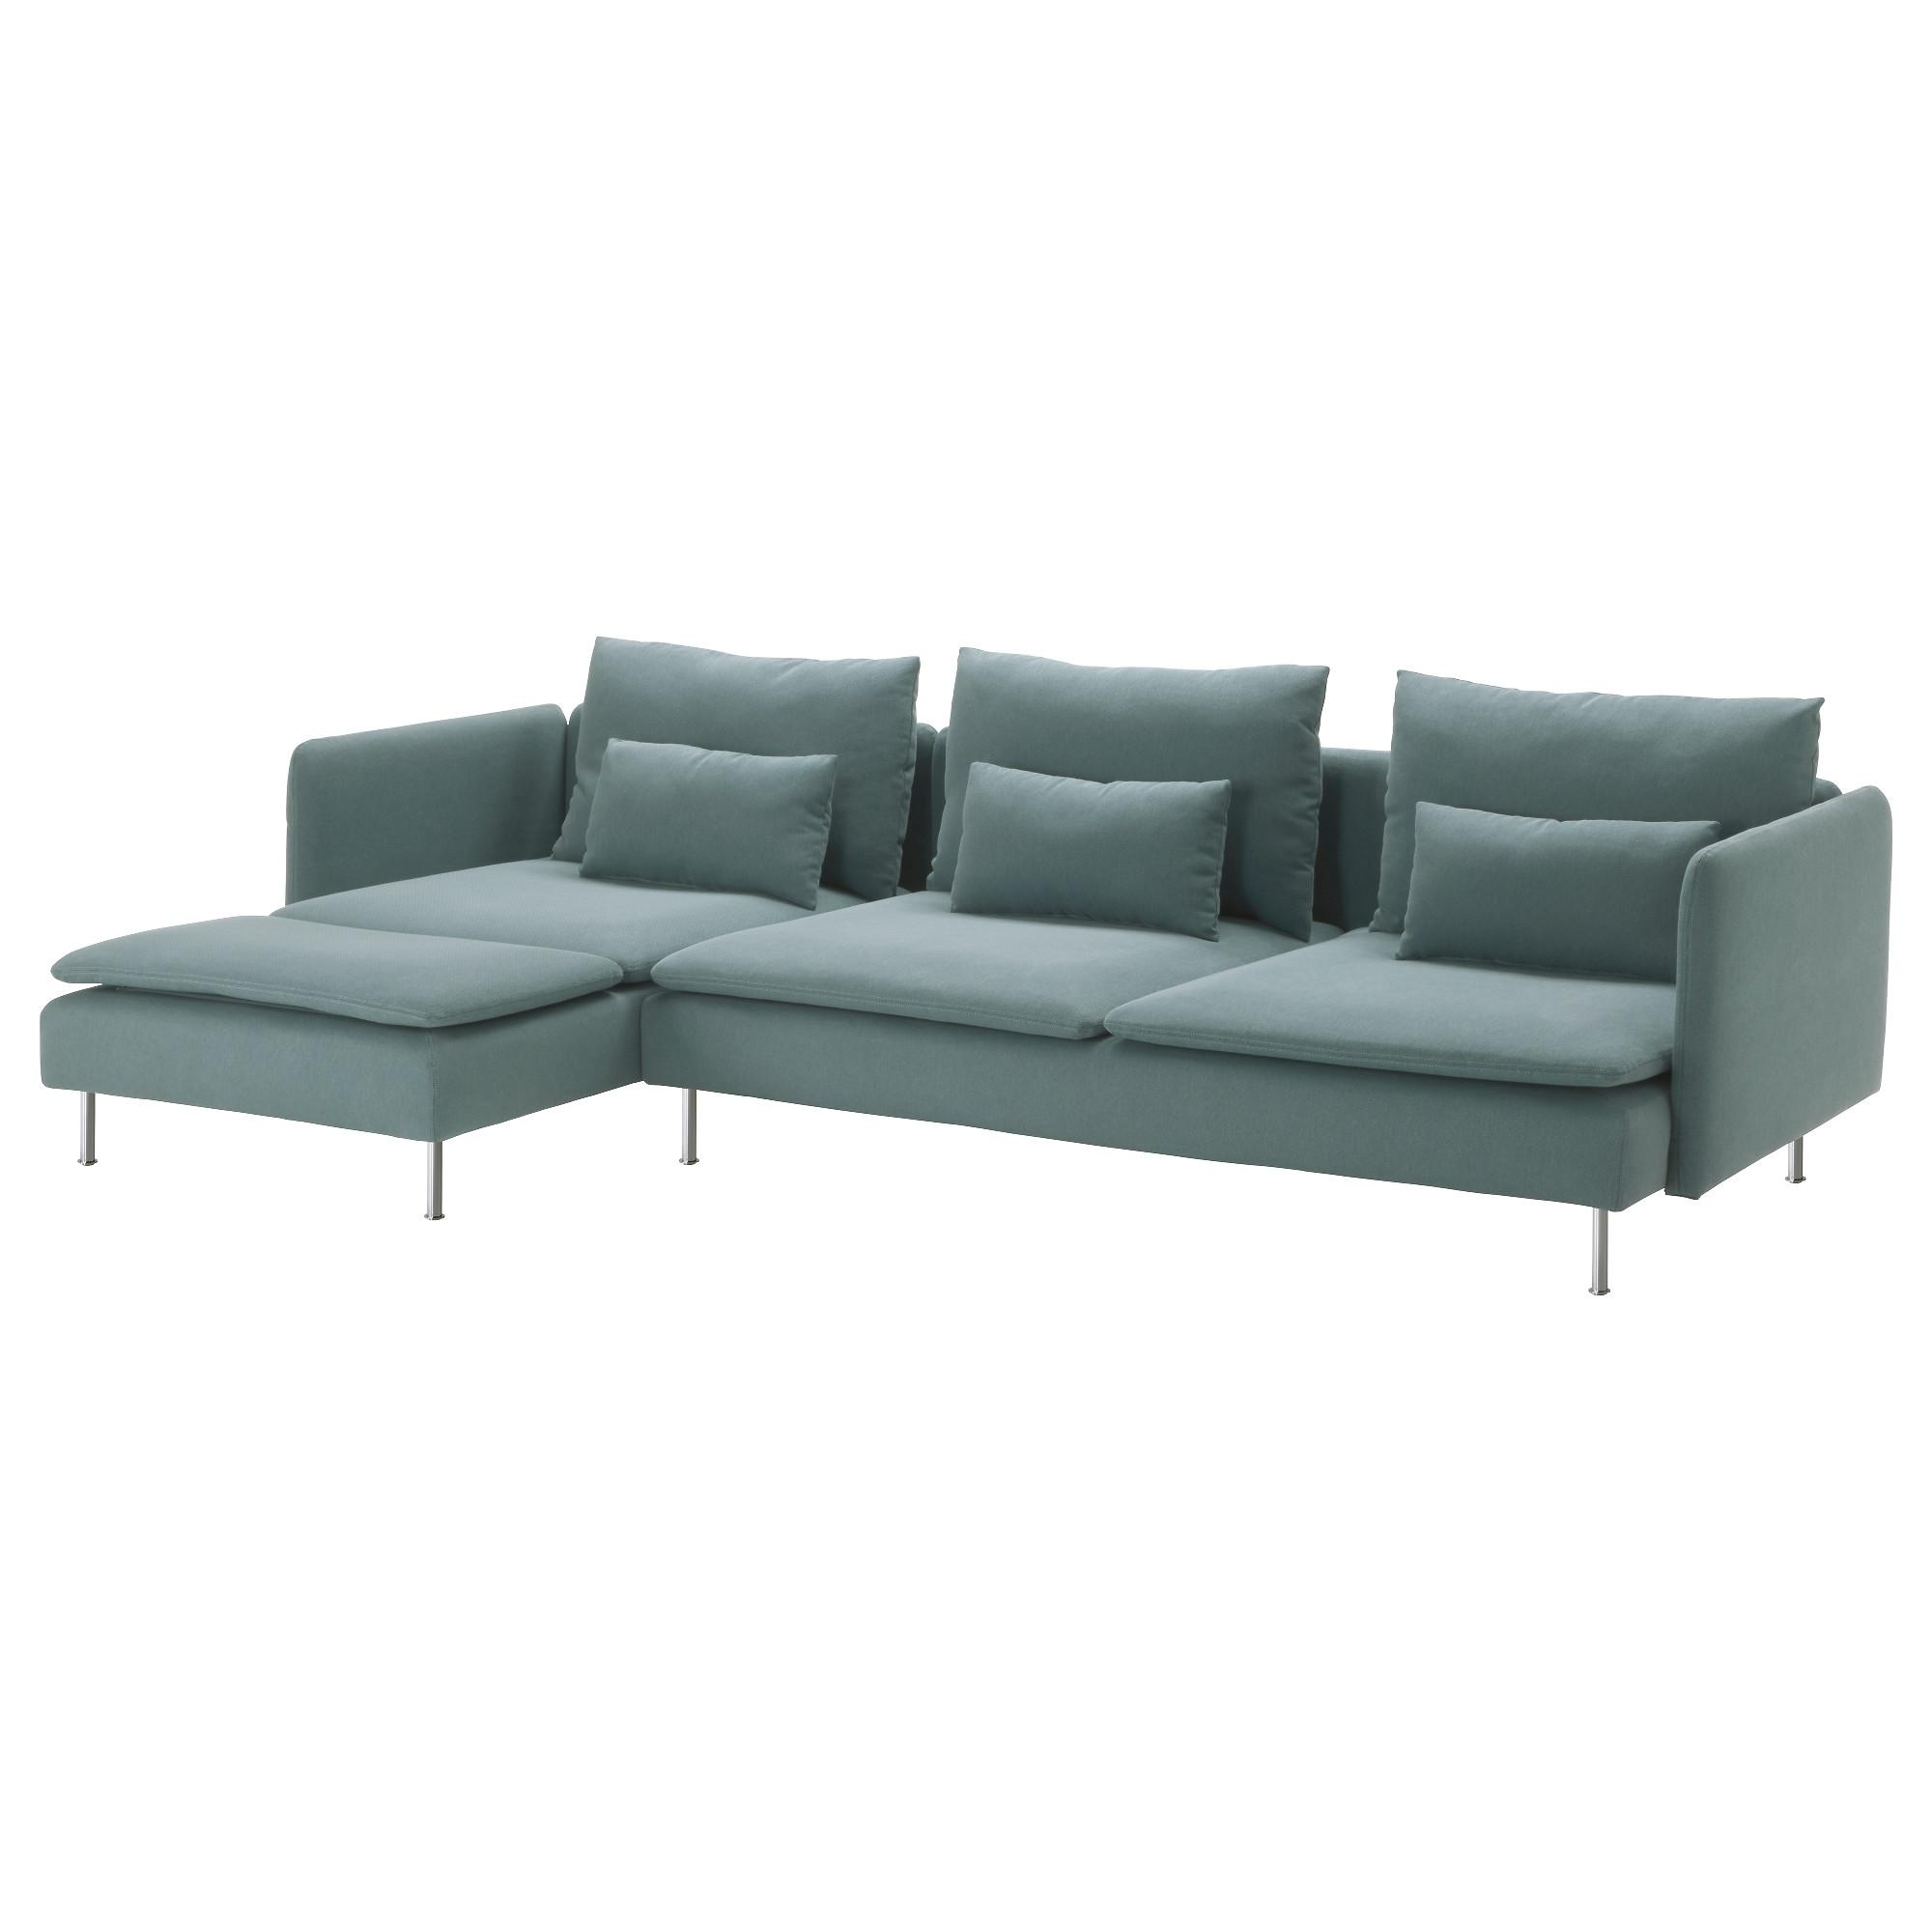 Modular Sofas & Sectionals – Ikea With Regard To Long Chaise Sofa (View 14 of 20)